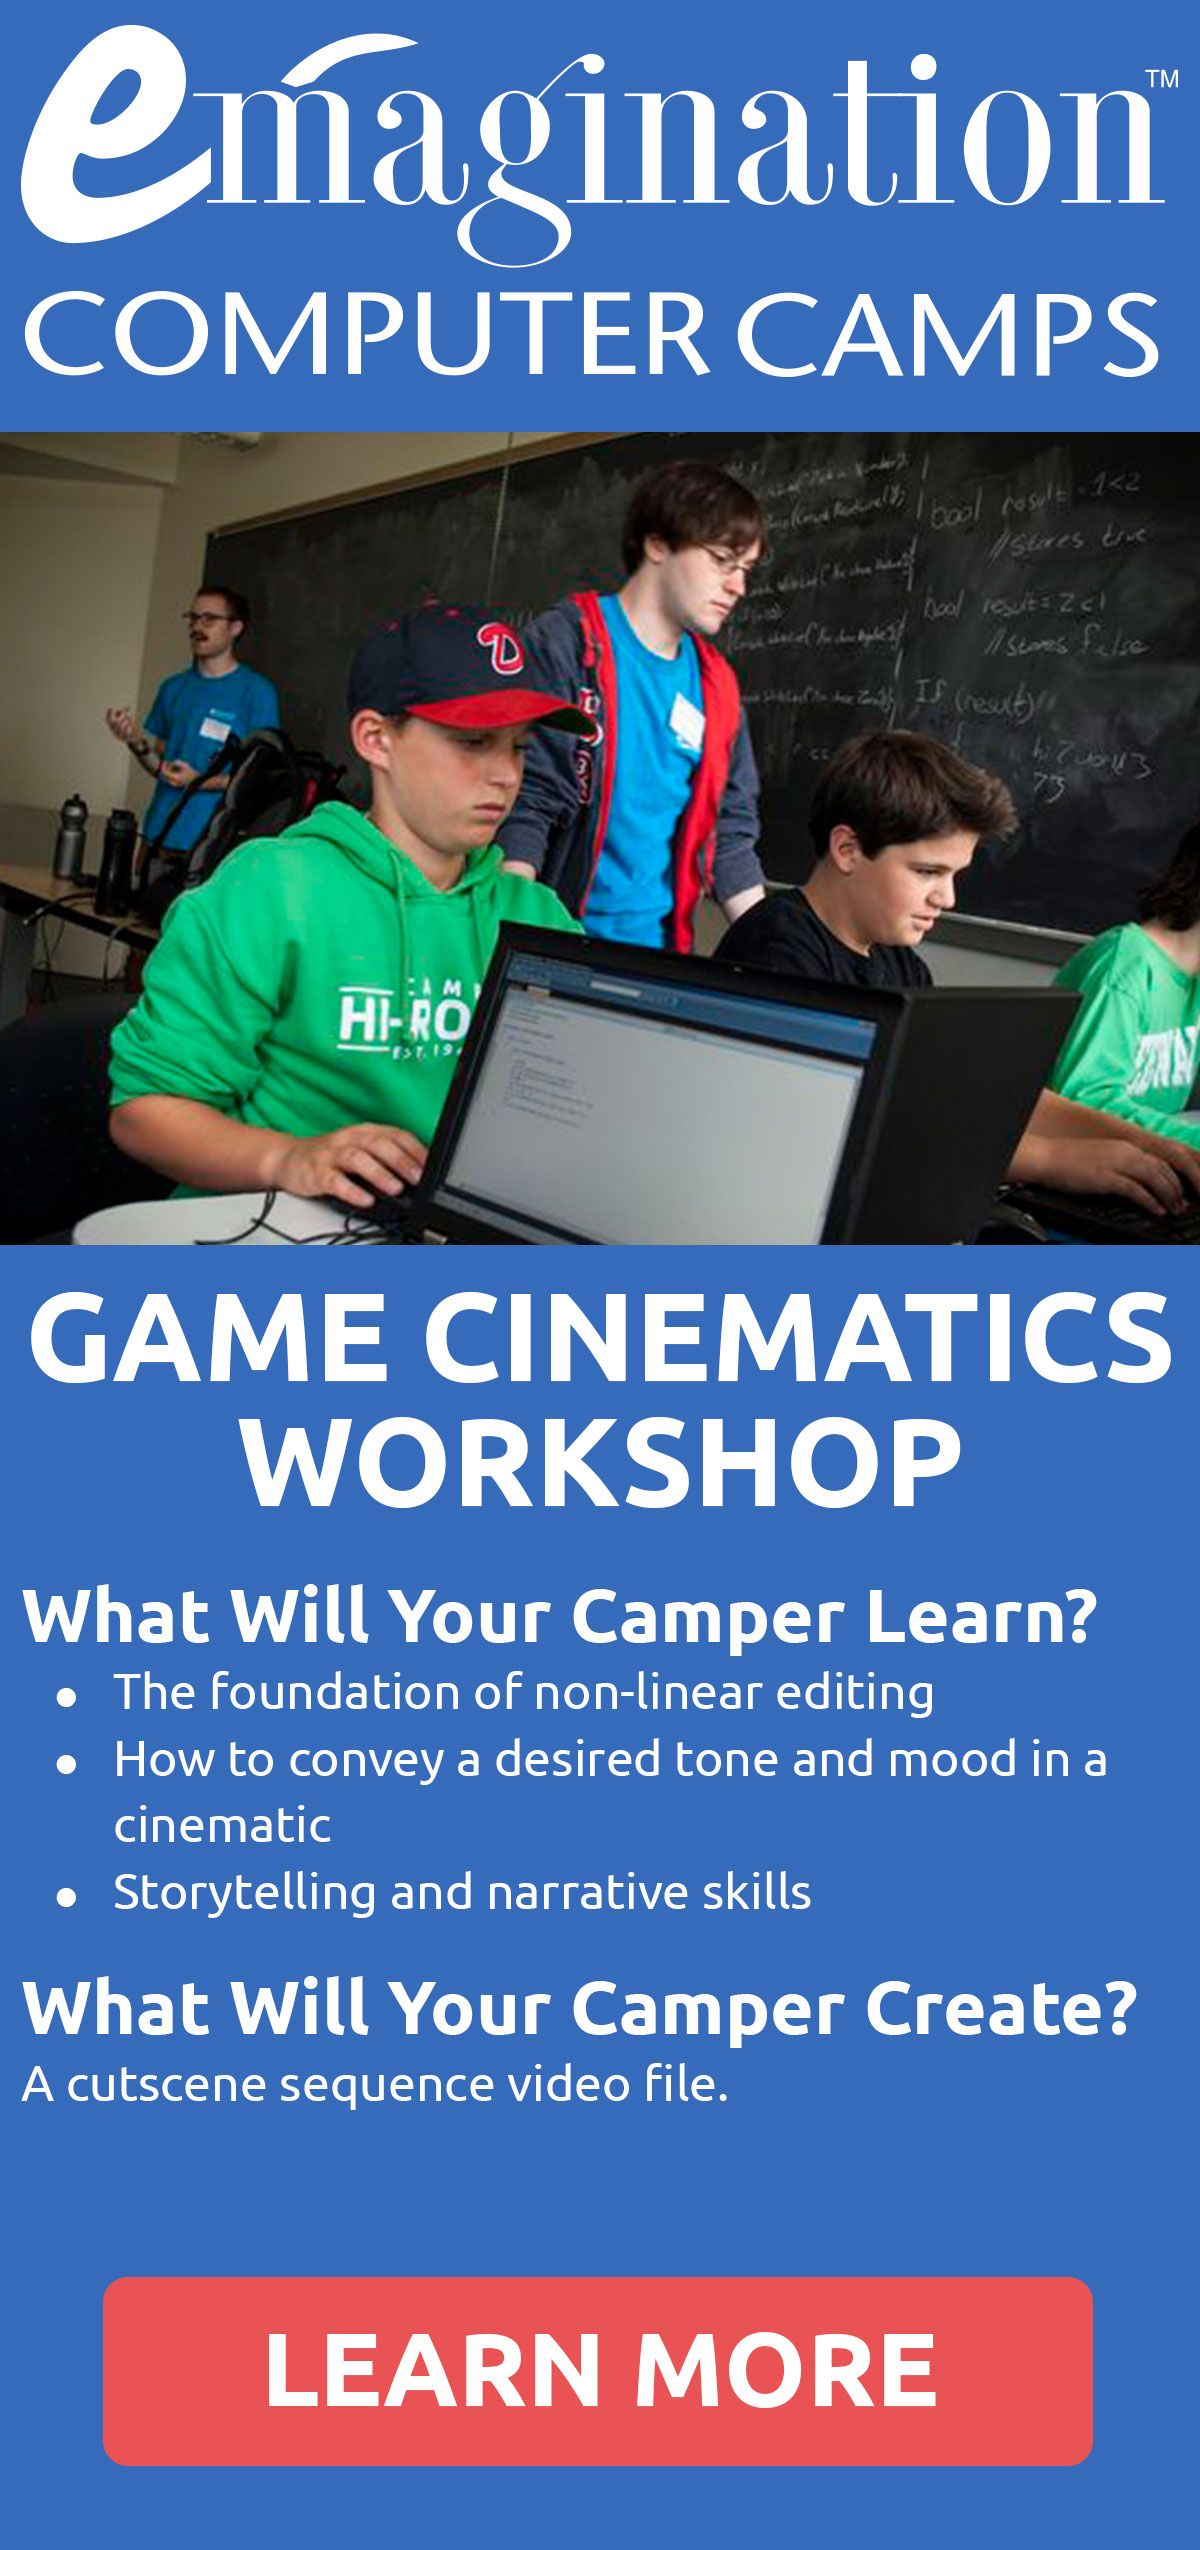 Cutscenes are short video clips that help develop the storyline in a video game. Campers use Unreal Sequencer, stock assets, and environments to create cutscenes that evolve games from fun and unique to emotionally compelling.